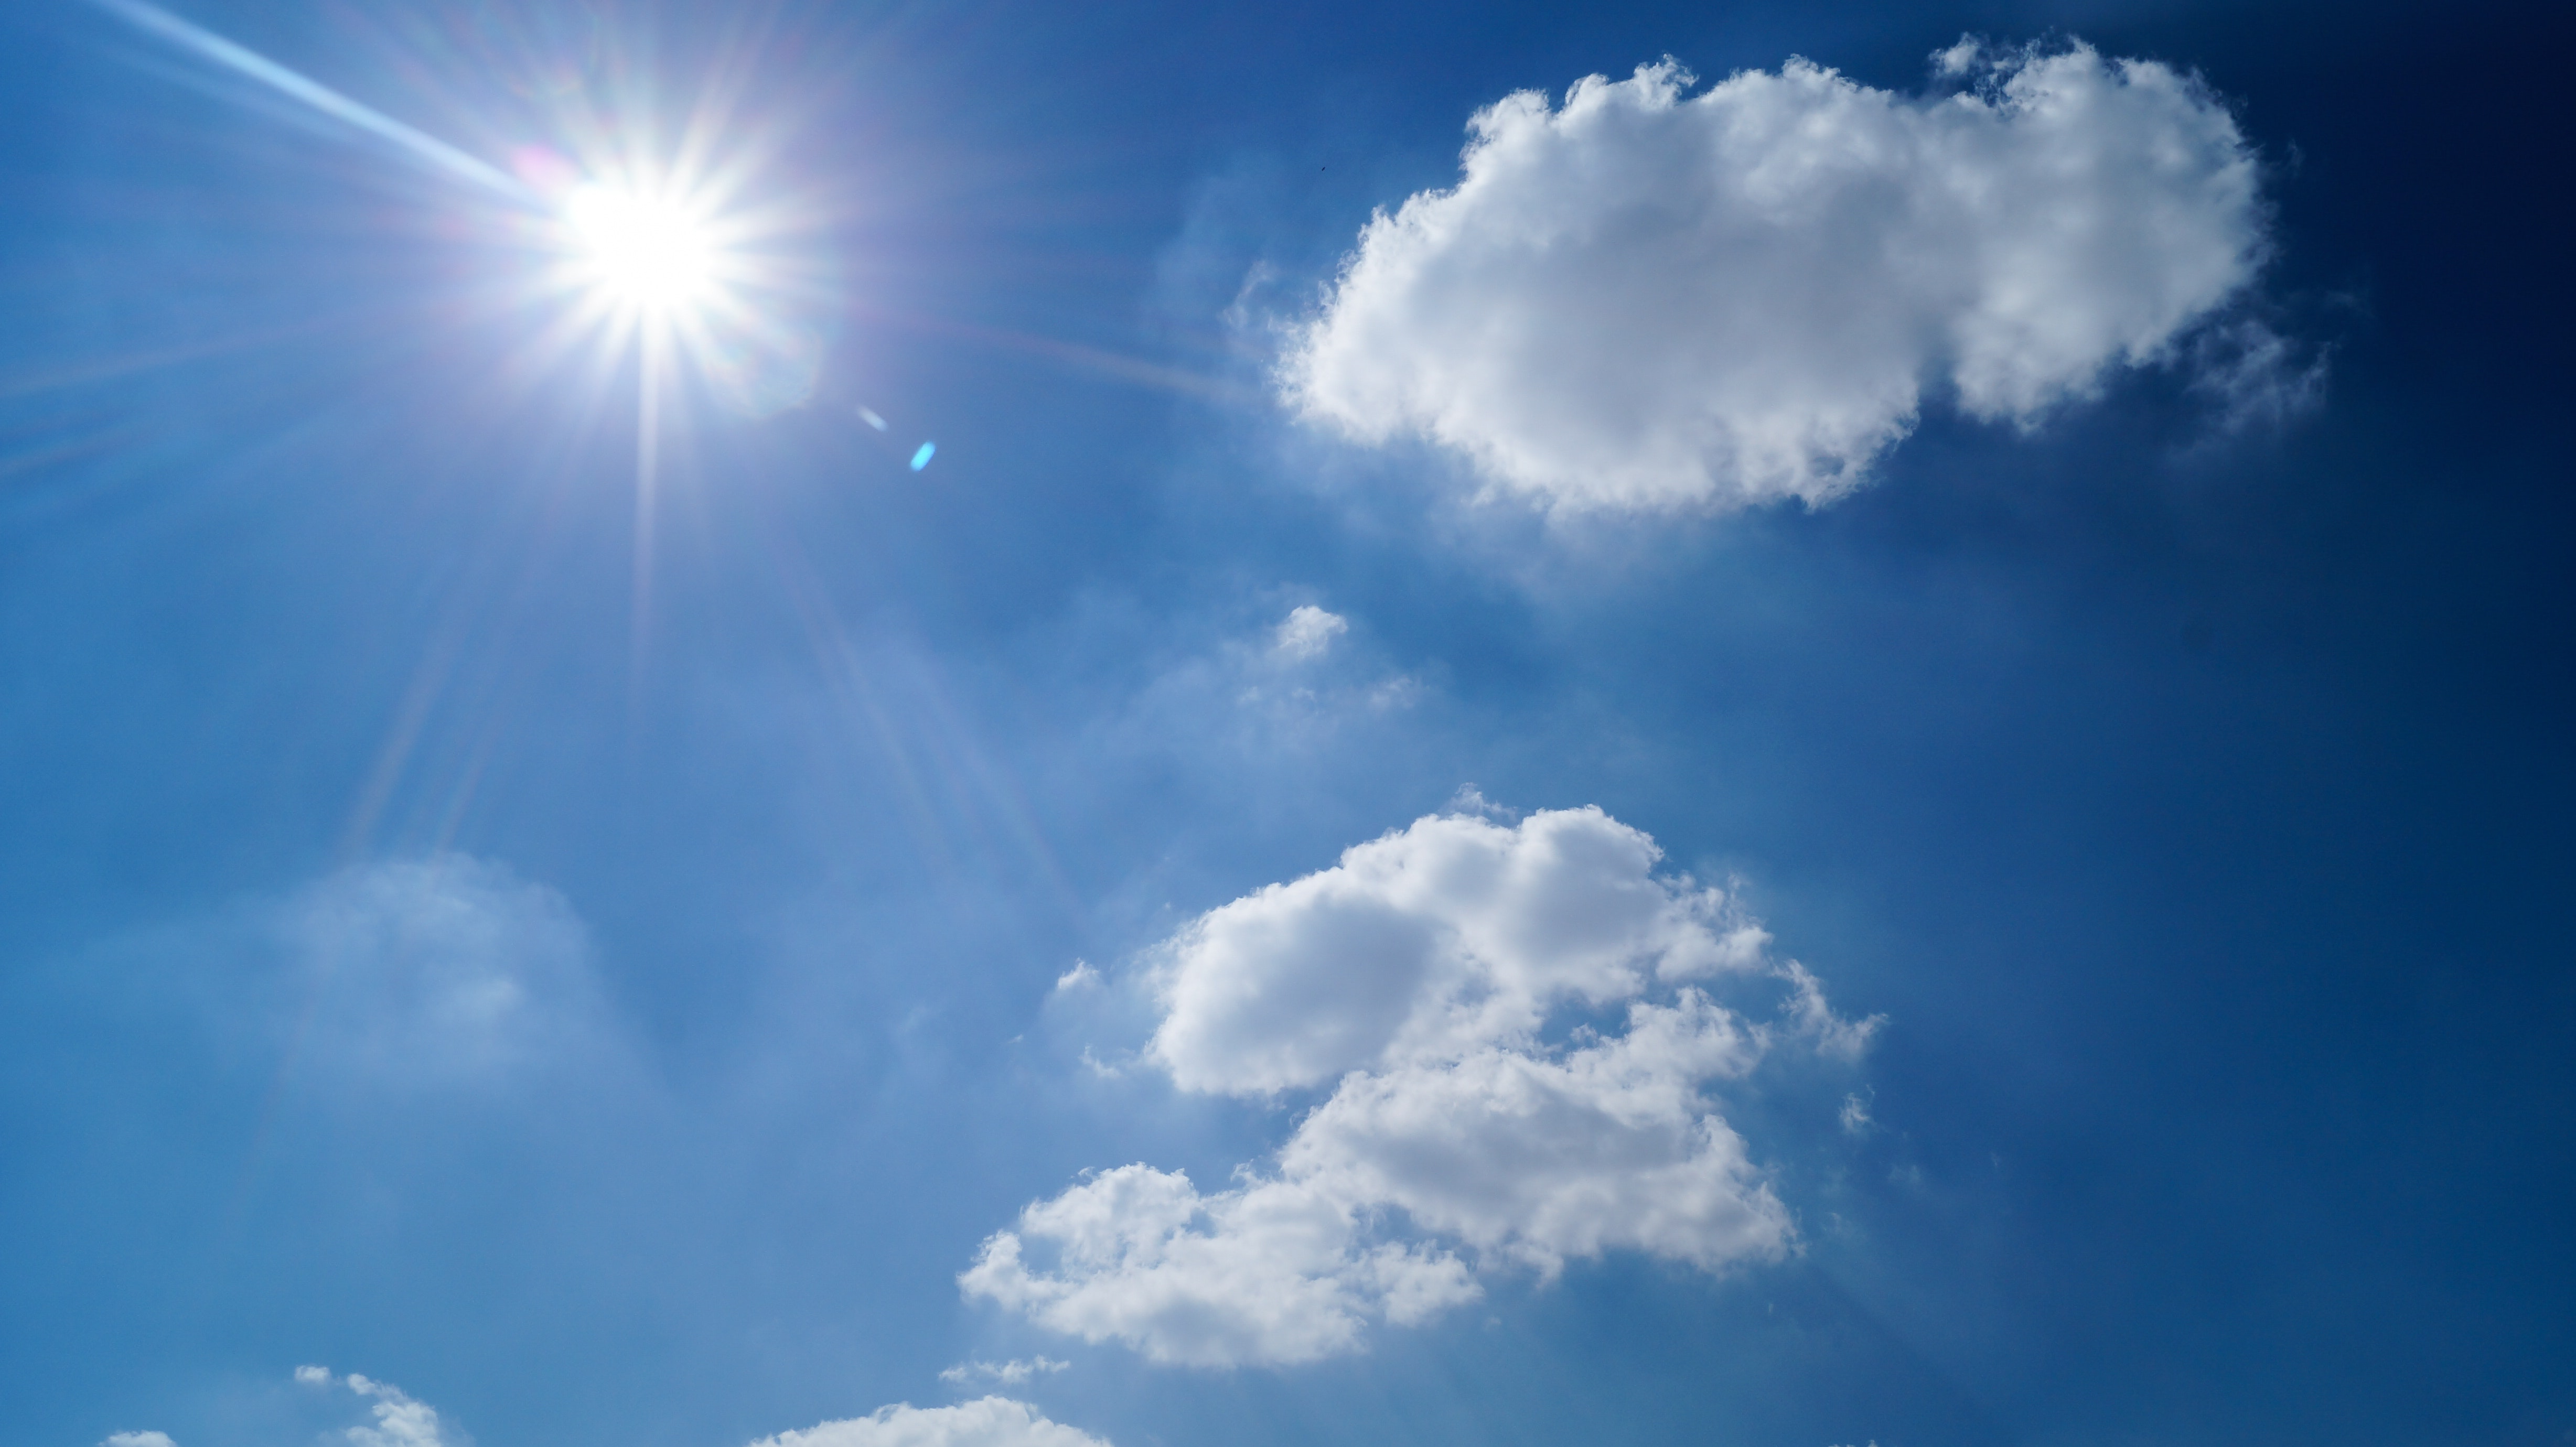 exposure to the sun's ultraviolet rays damages elastin fibers in the skin